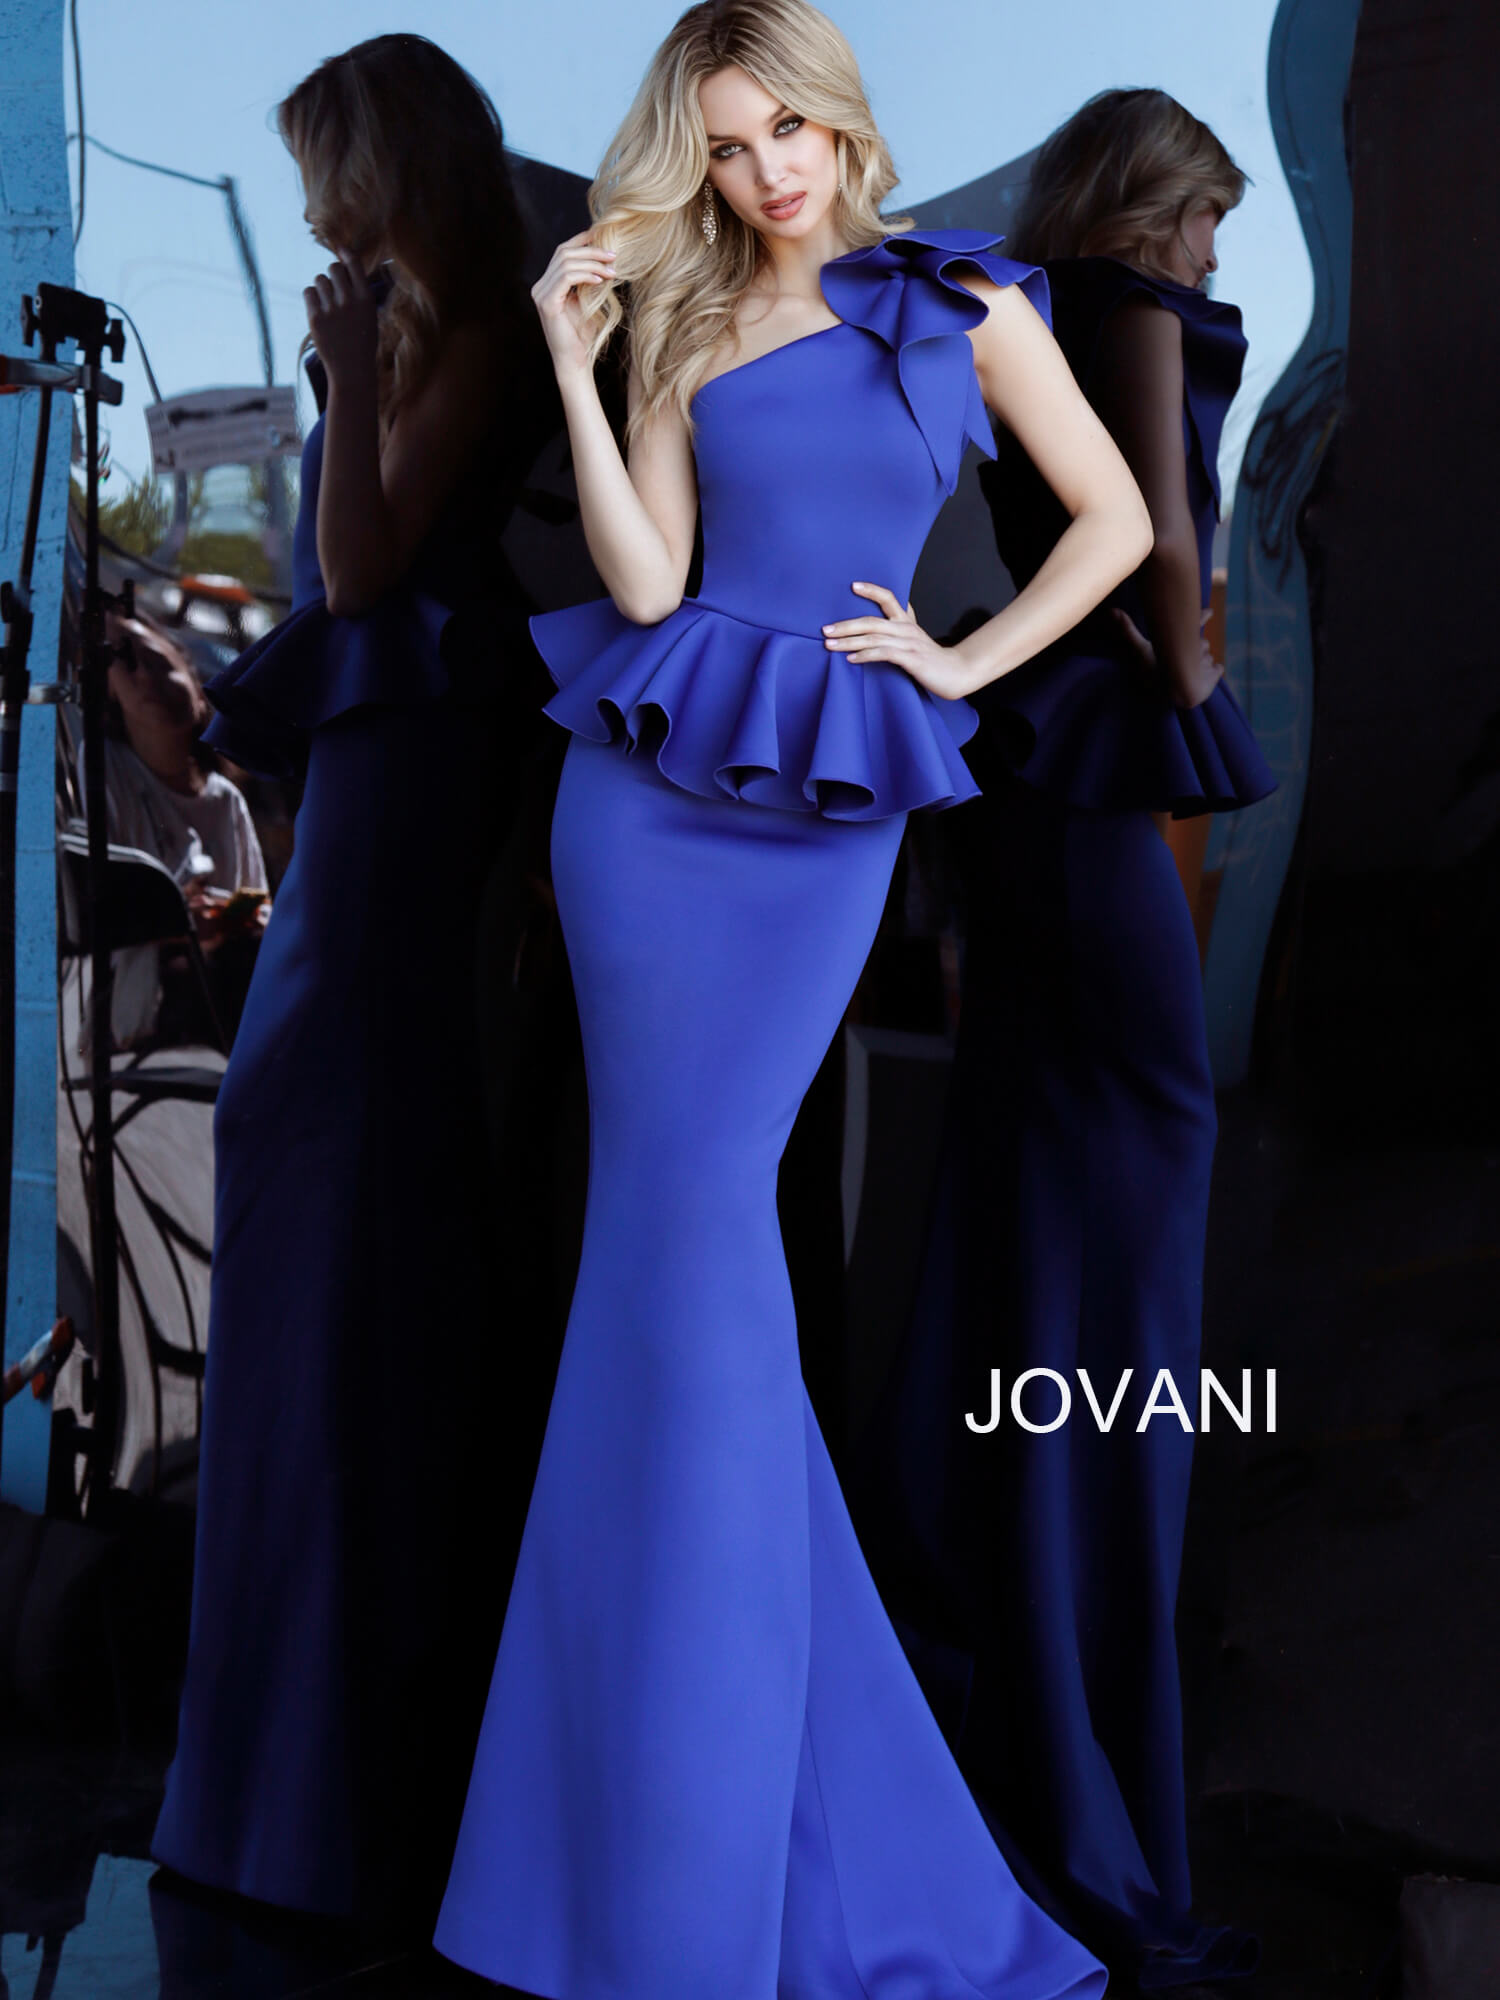 jovani Jovani 63584 Royal One Shoulder Peplum Evening Dress  on mobile 1